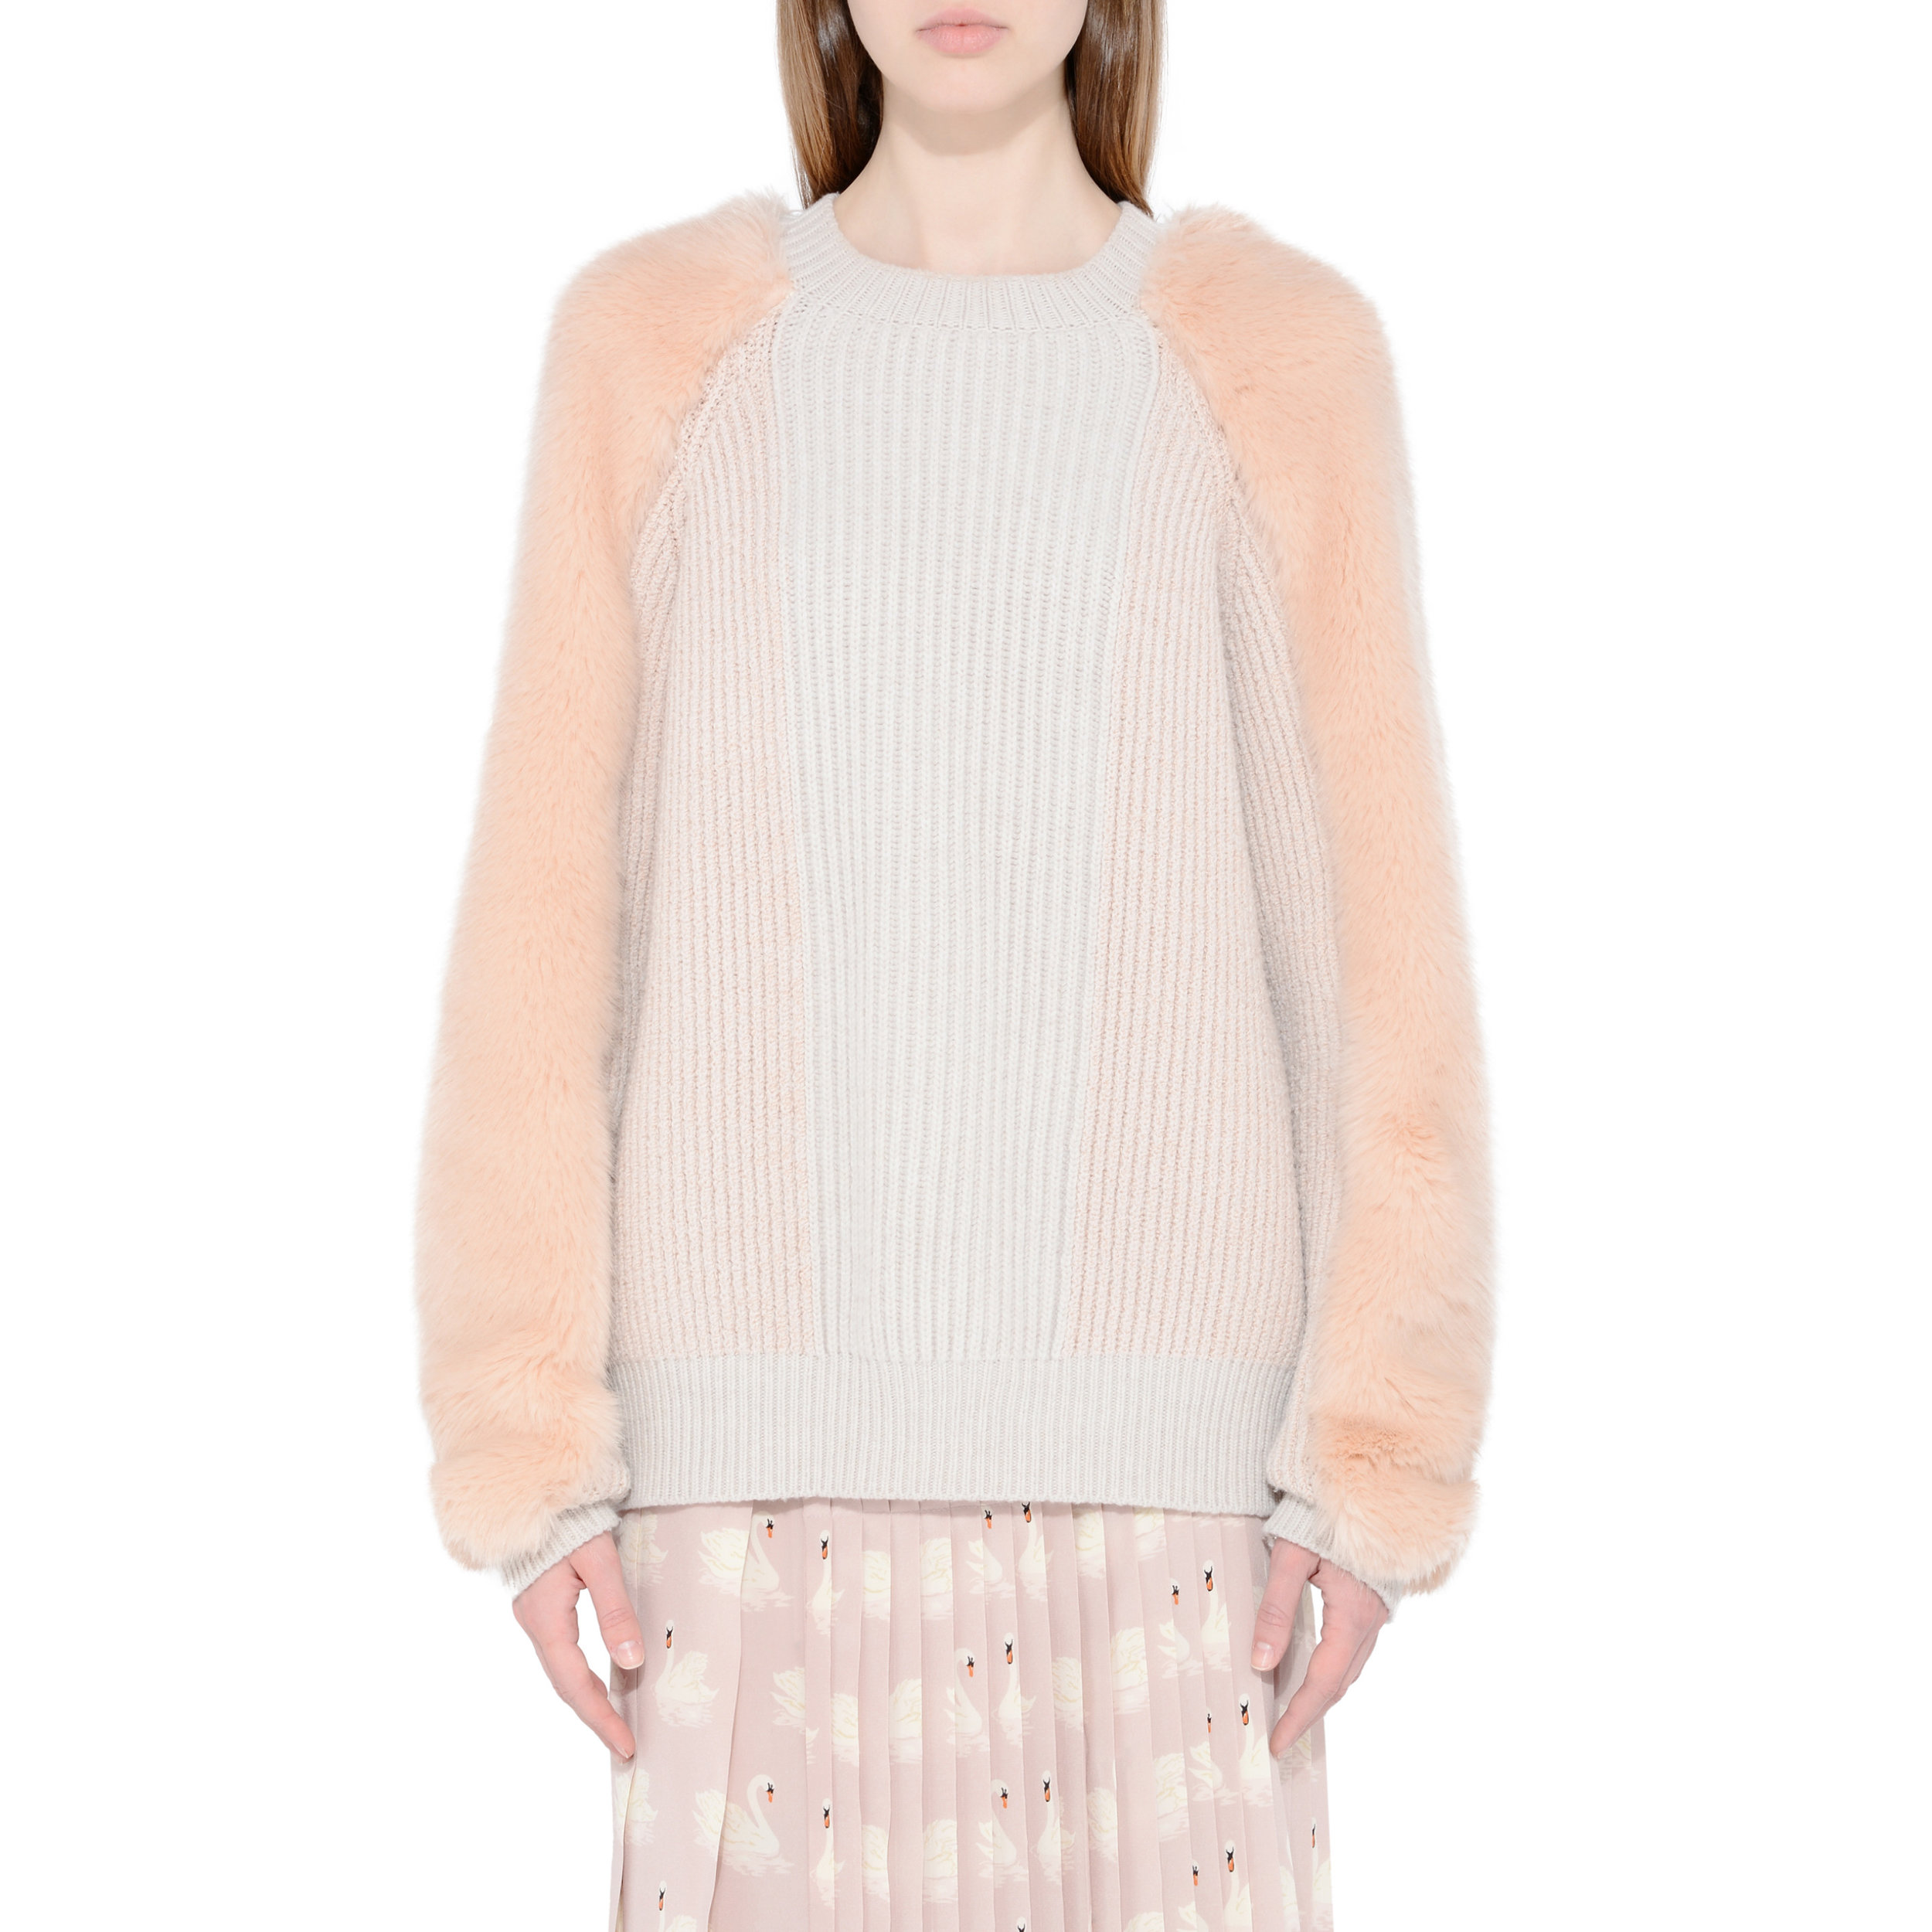 Stella McCartney $1,155